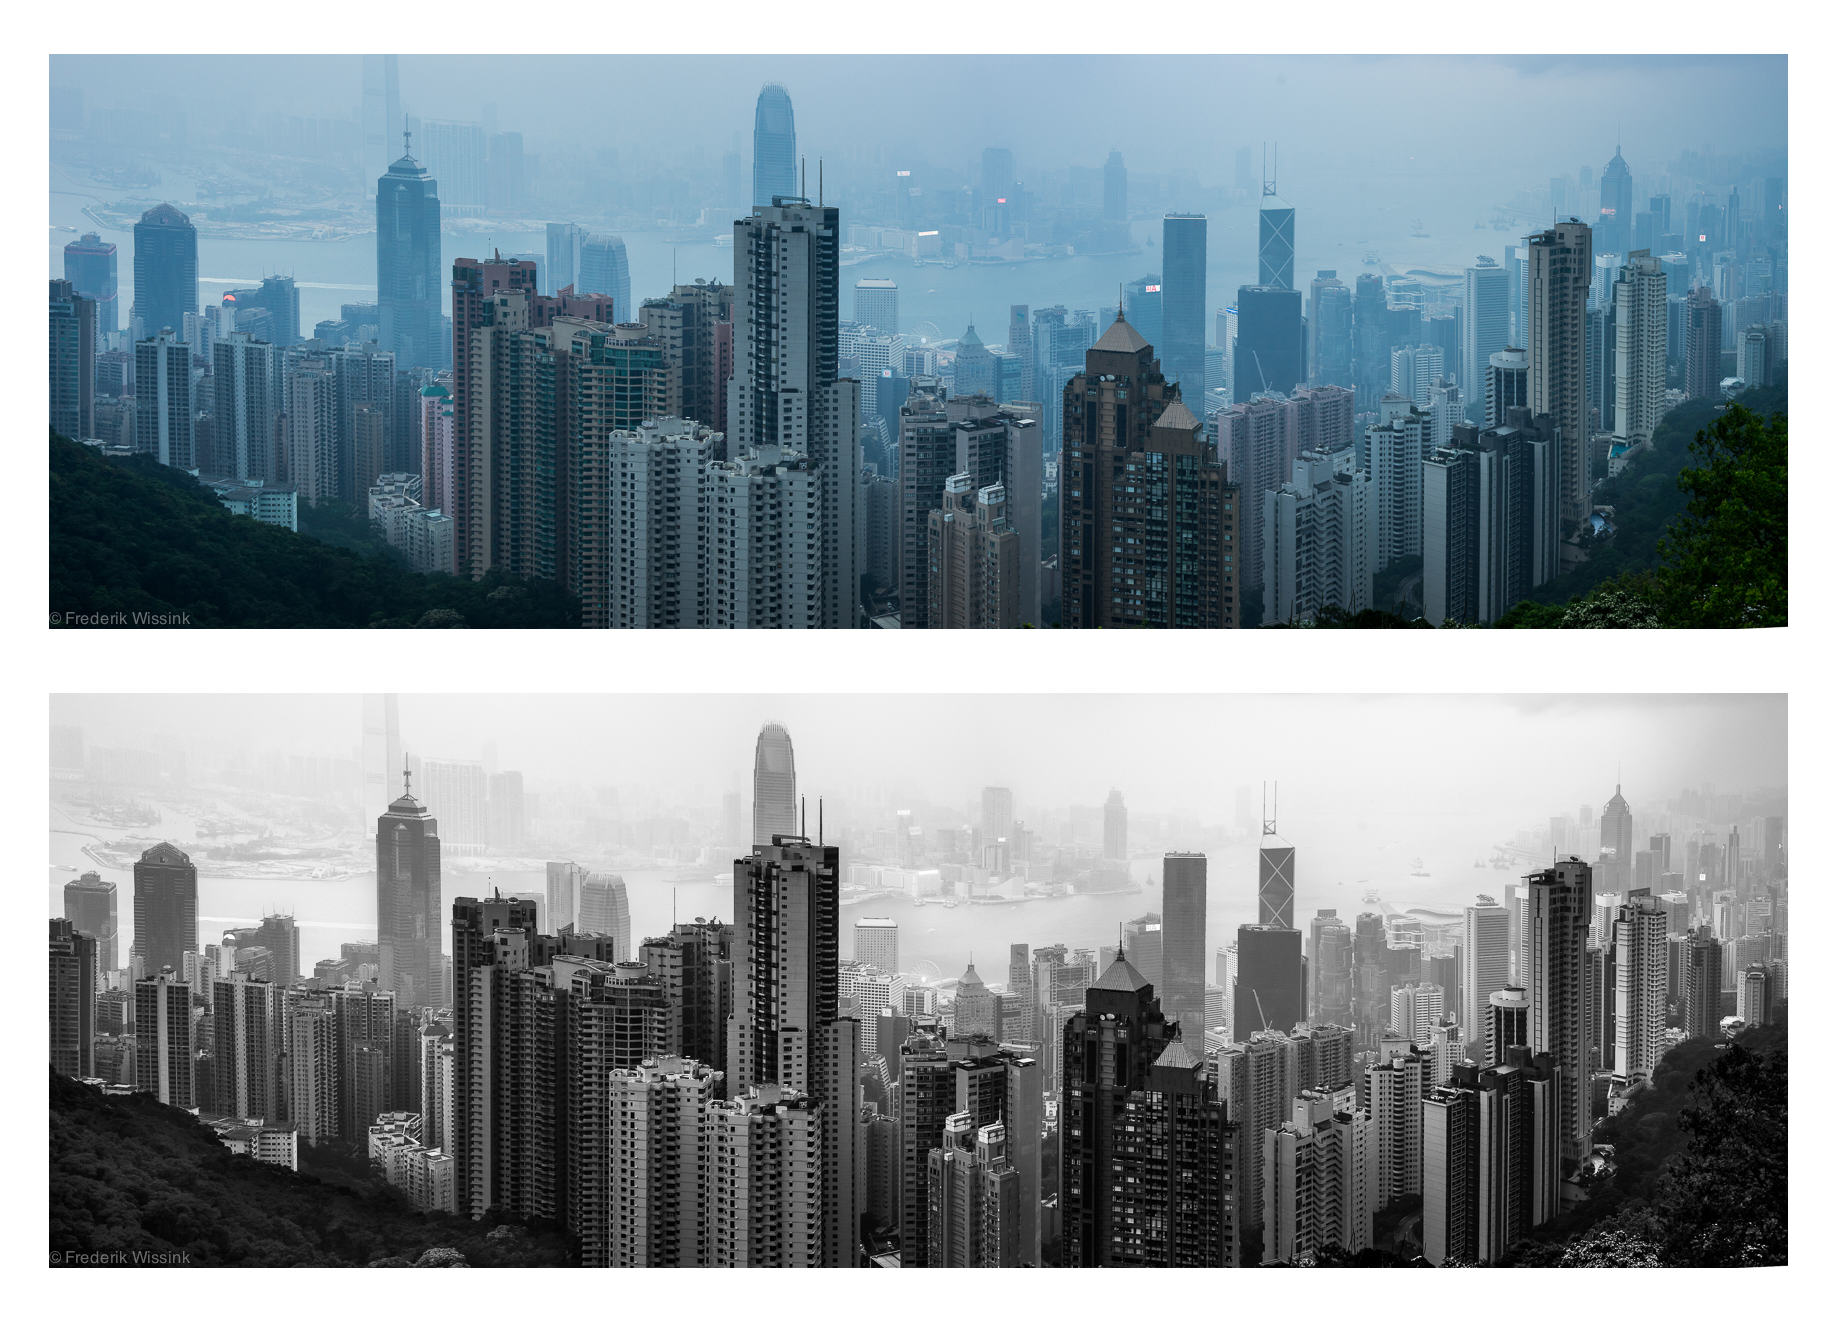 hong-kong-skyline-comparison